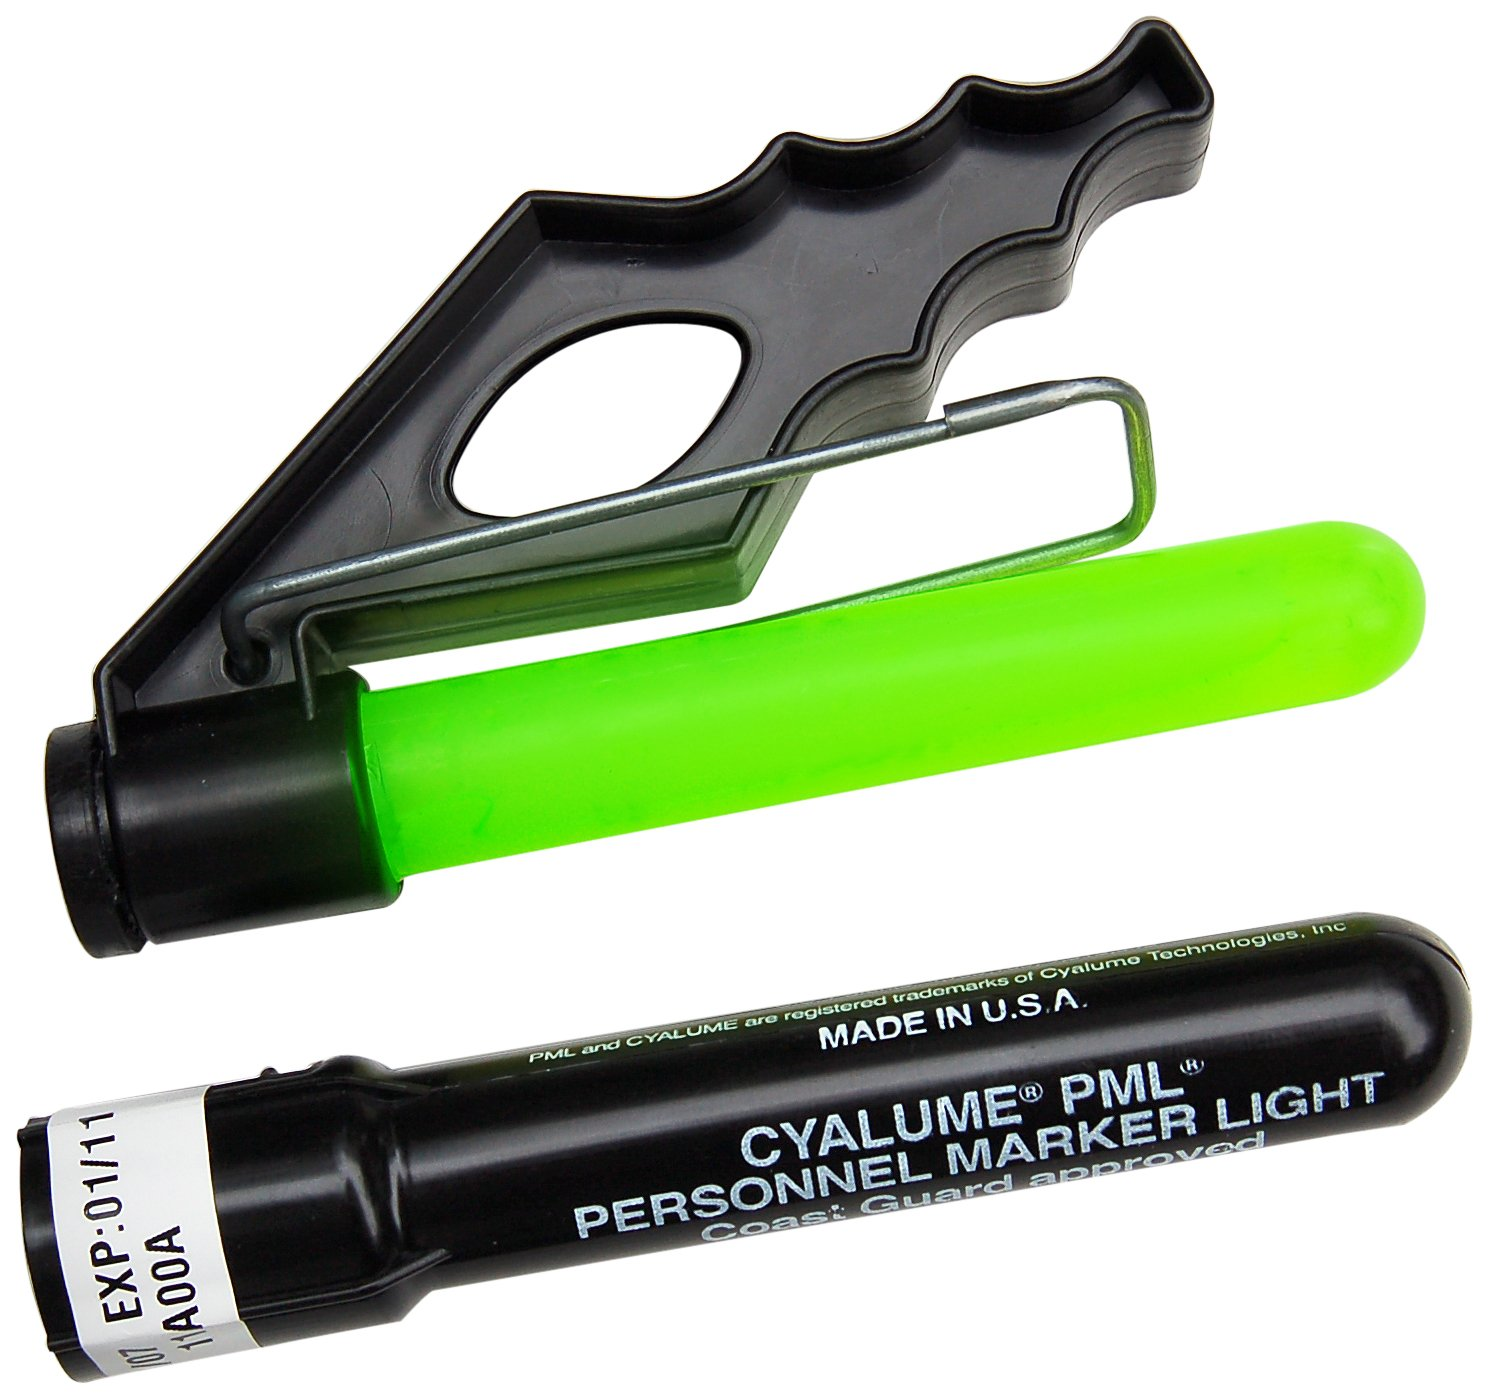 Cyalume ChemLight Military Grade Life-Vest PML Personnel Marker Chemical Light Sticks, Green, 5-1/4'' Long, 8 Hour Duration (Pack of 5)-US Coast Guard Approved